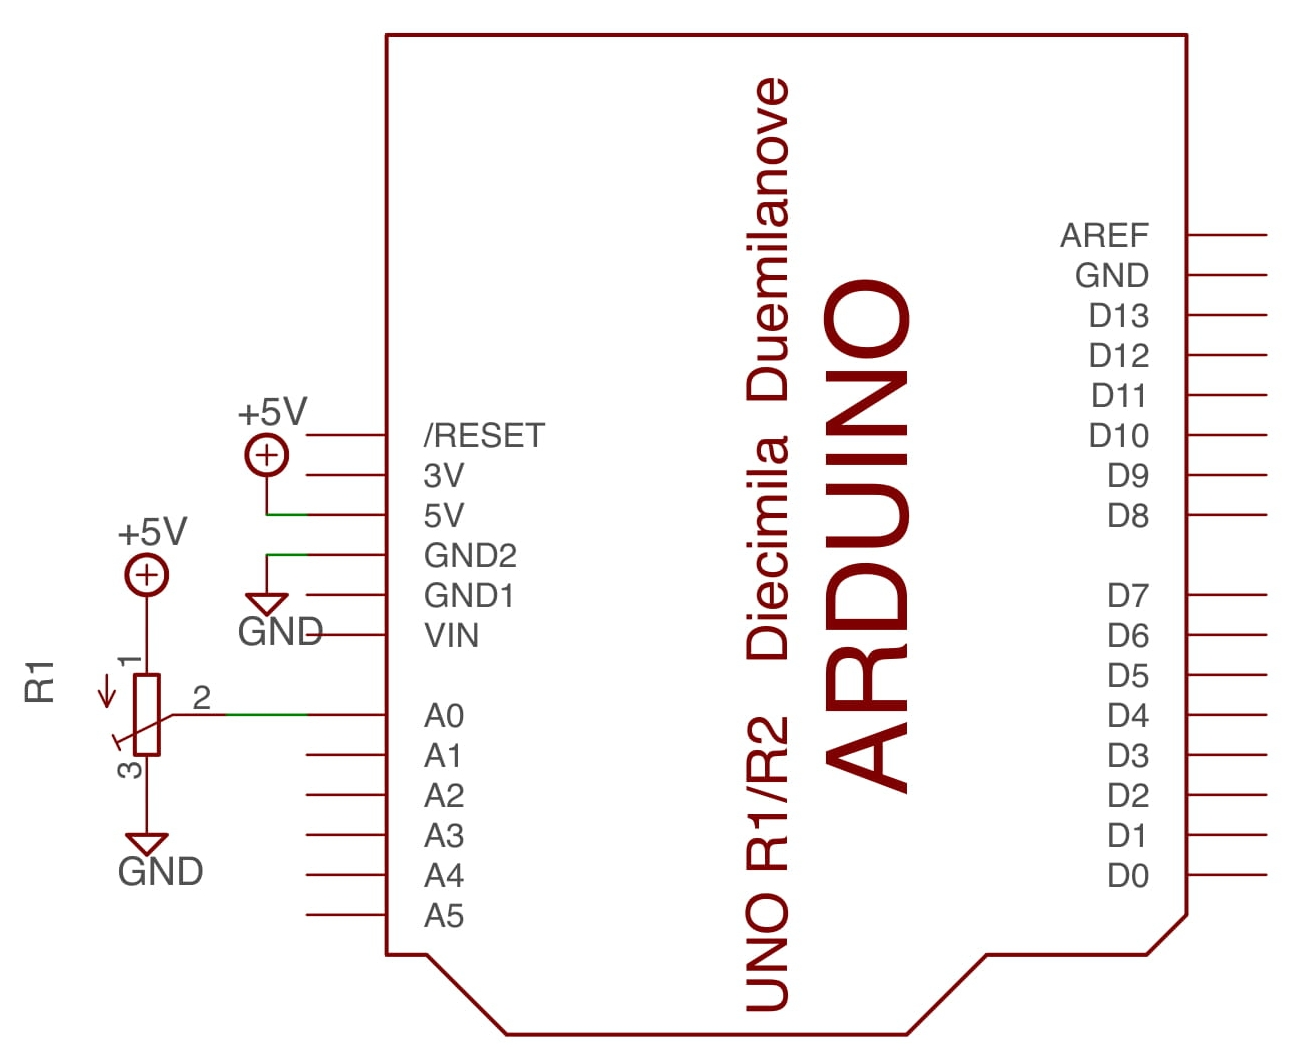 Schematic for simple circuit using a potentiometer to control a p5.js sketch.